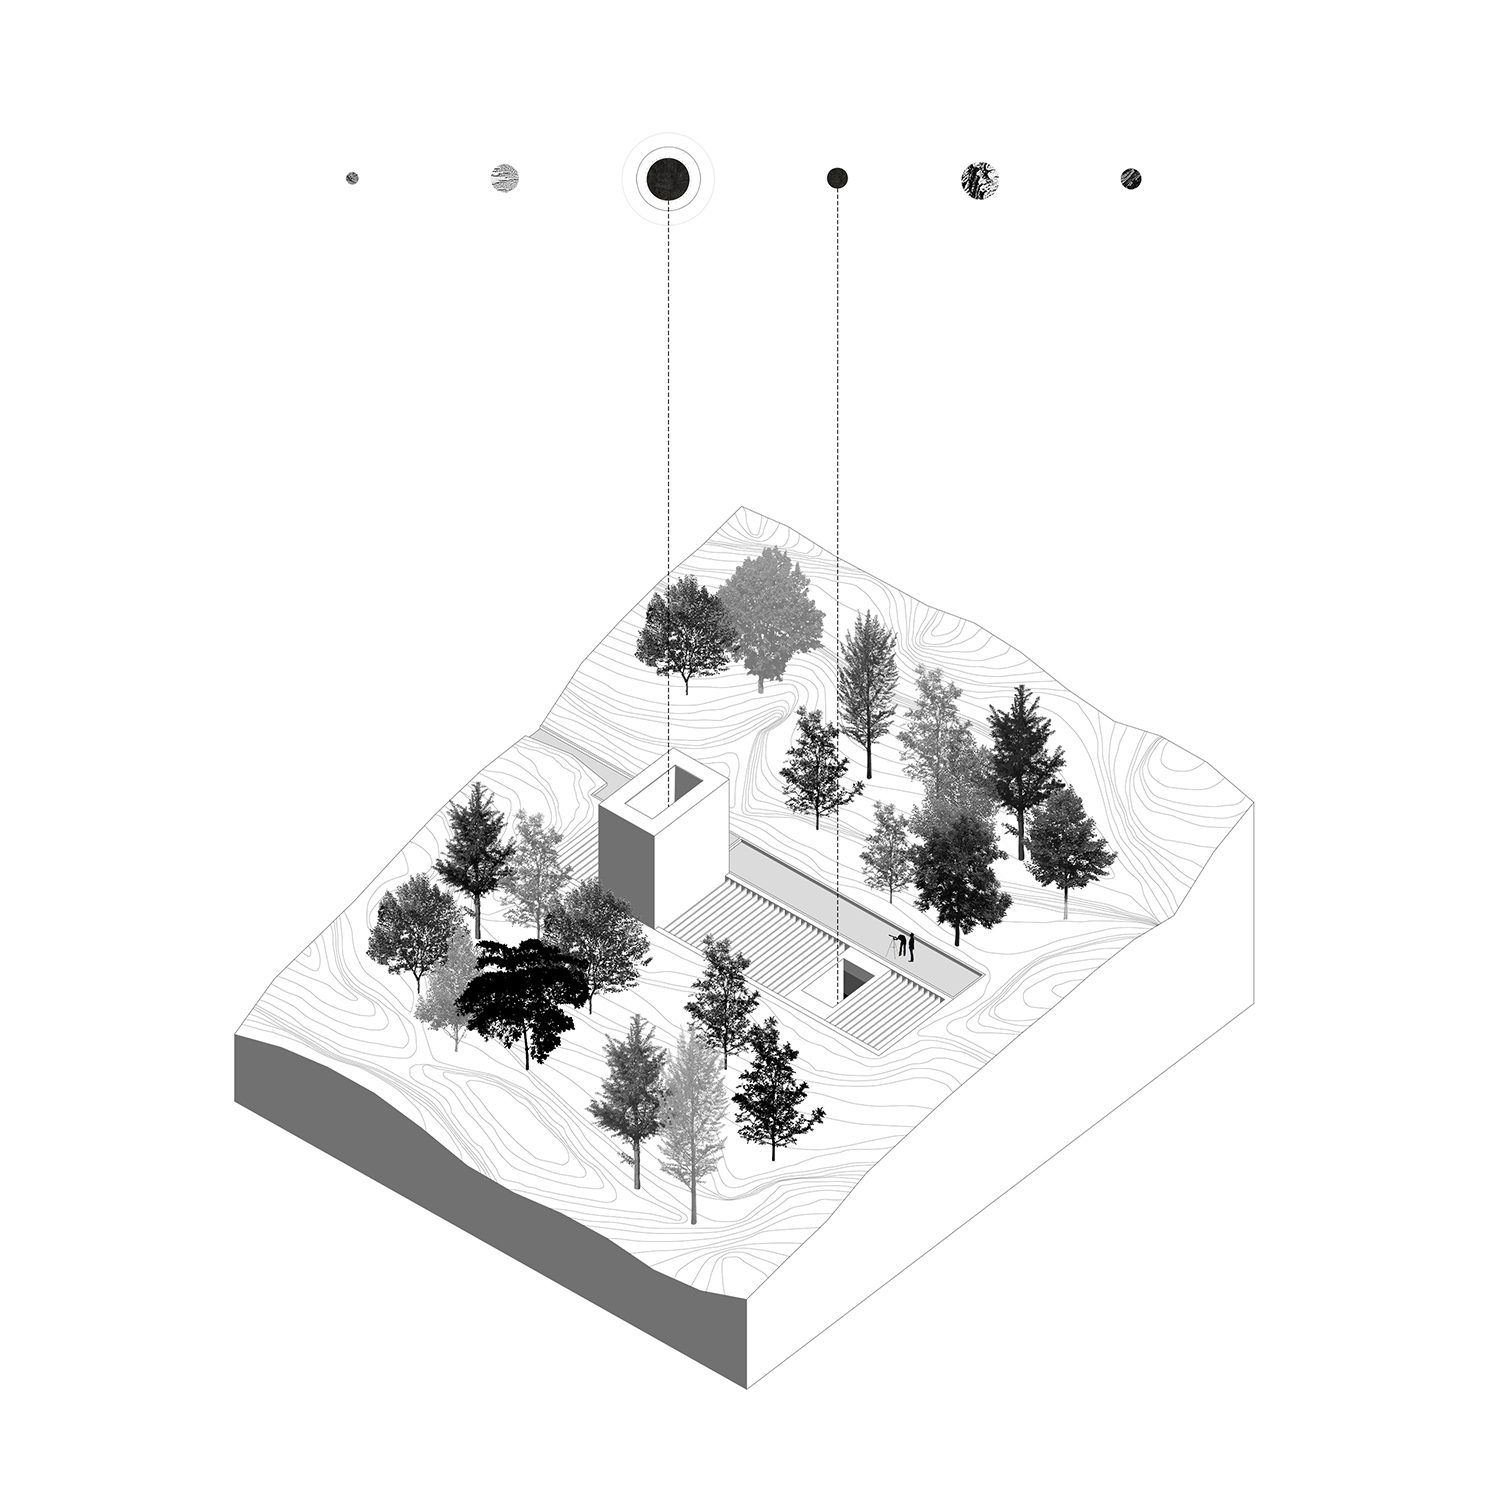 Monolith, YAC observatory houses axonometric